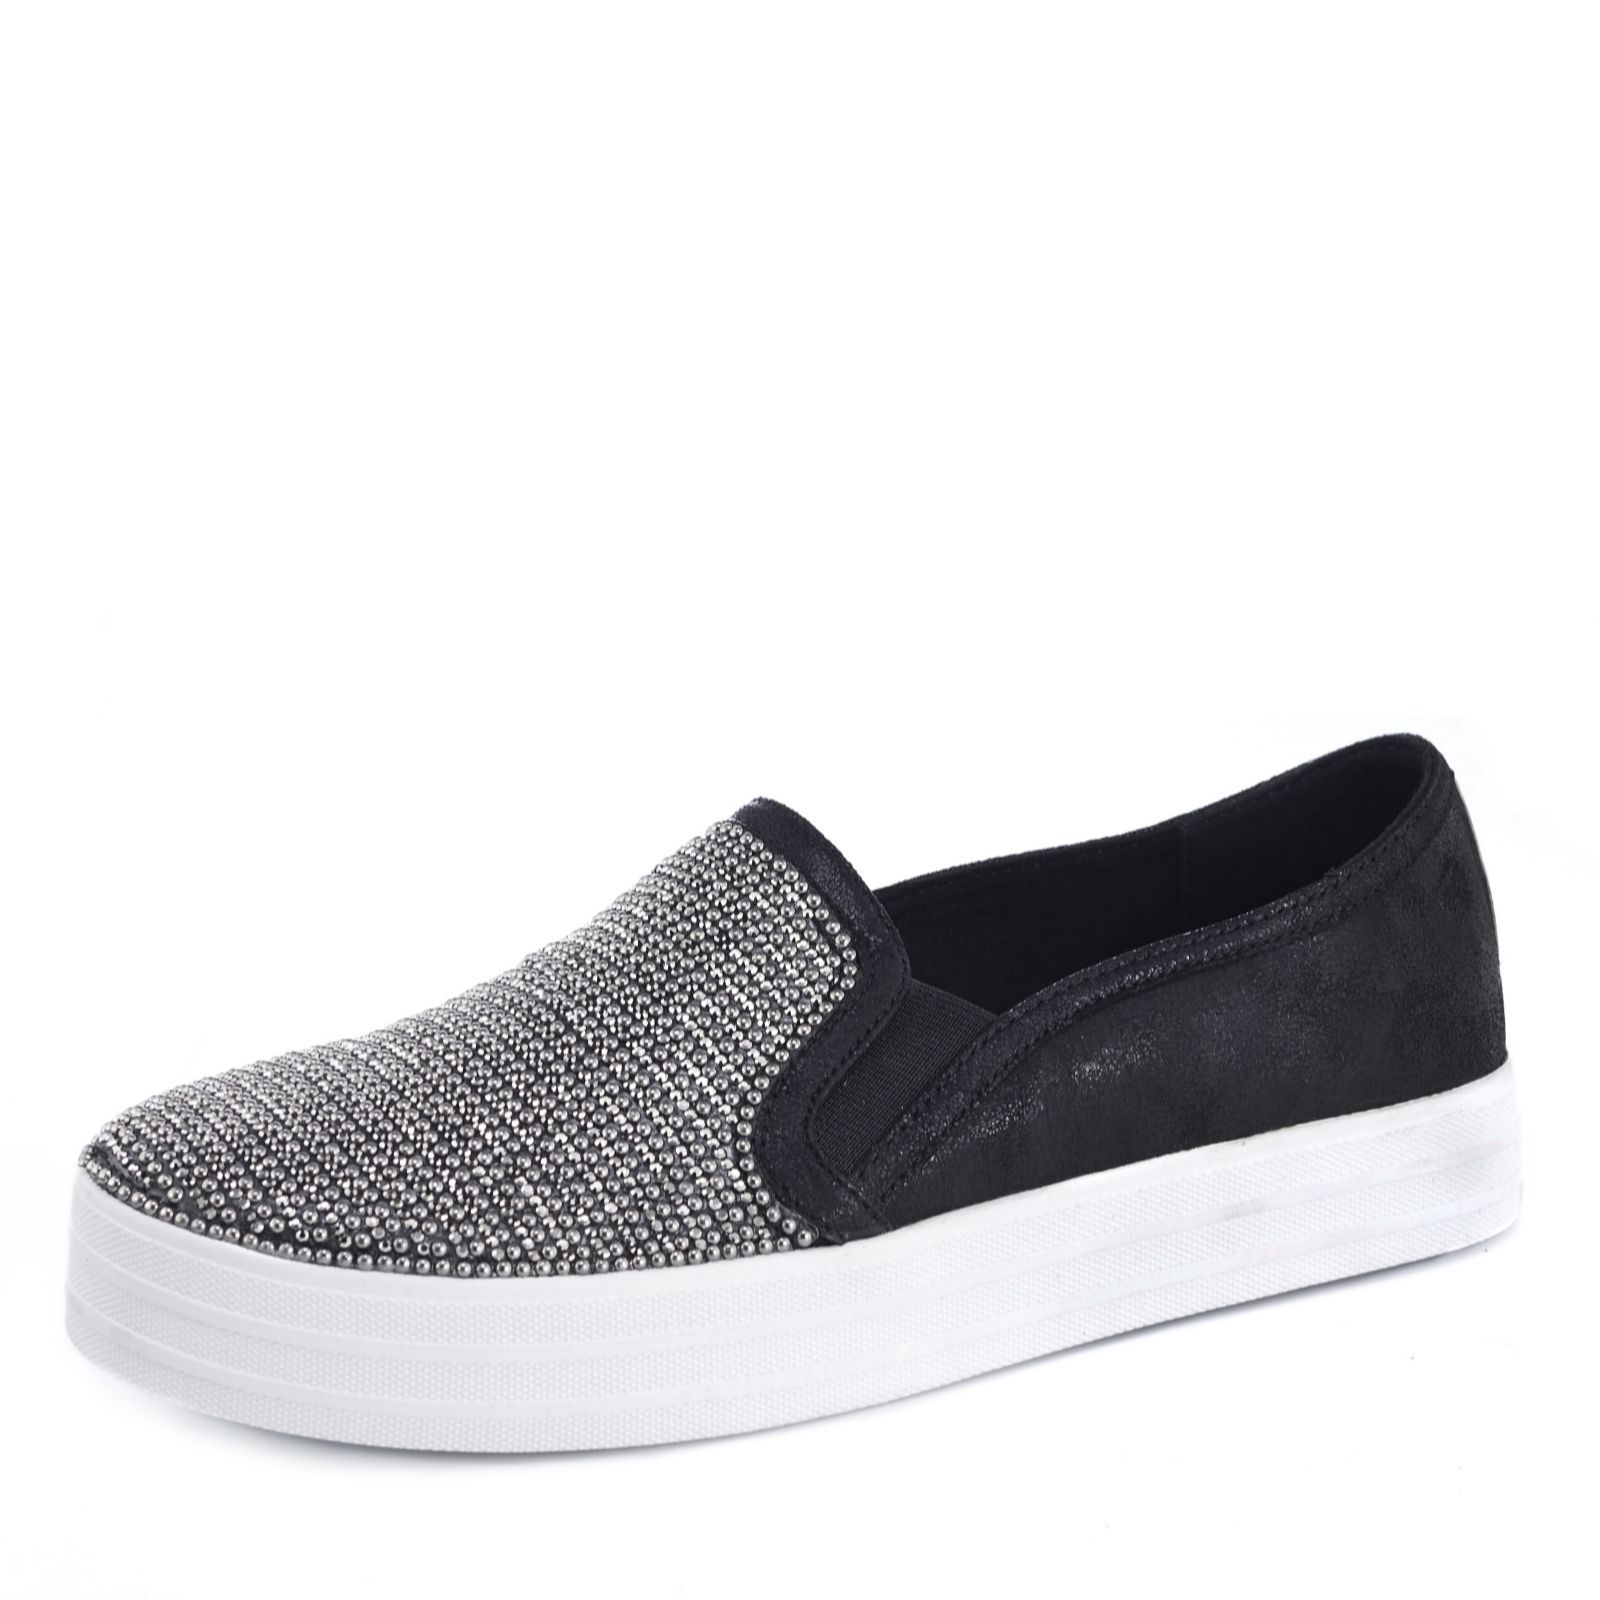 new styles 01a23 816bb Skechers Double Up Shiny Dancer Slip On Trainer - QVC UK